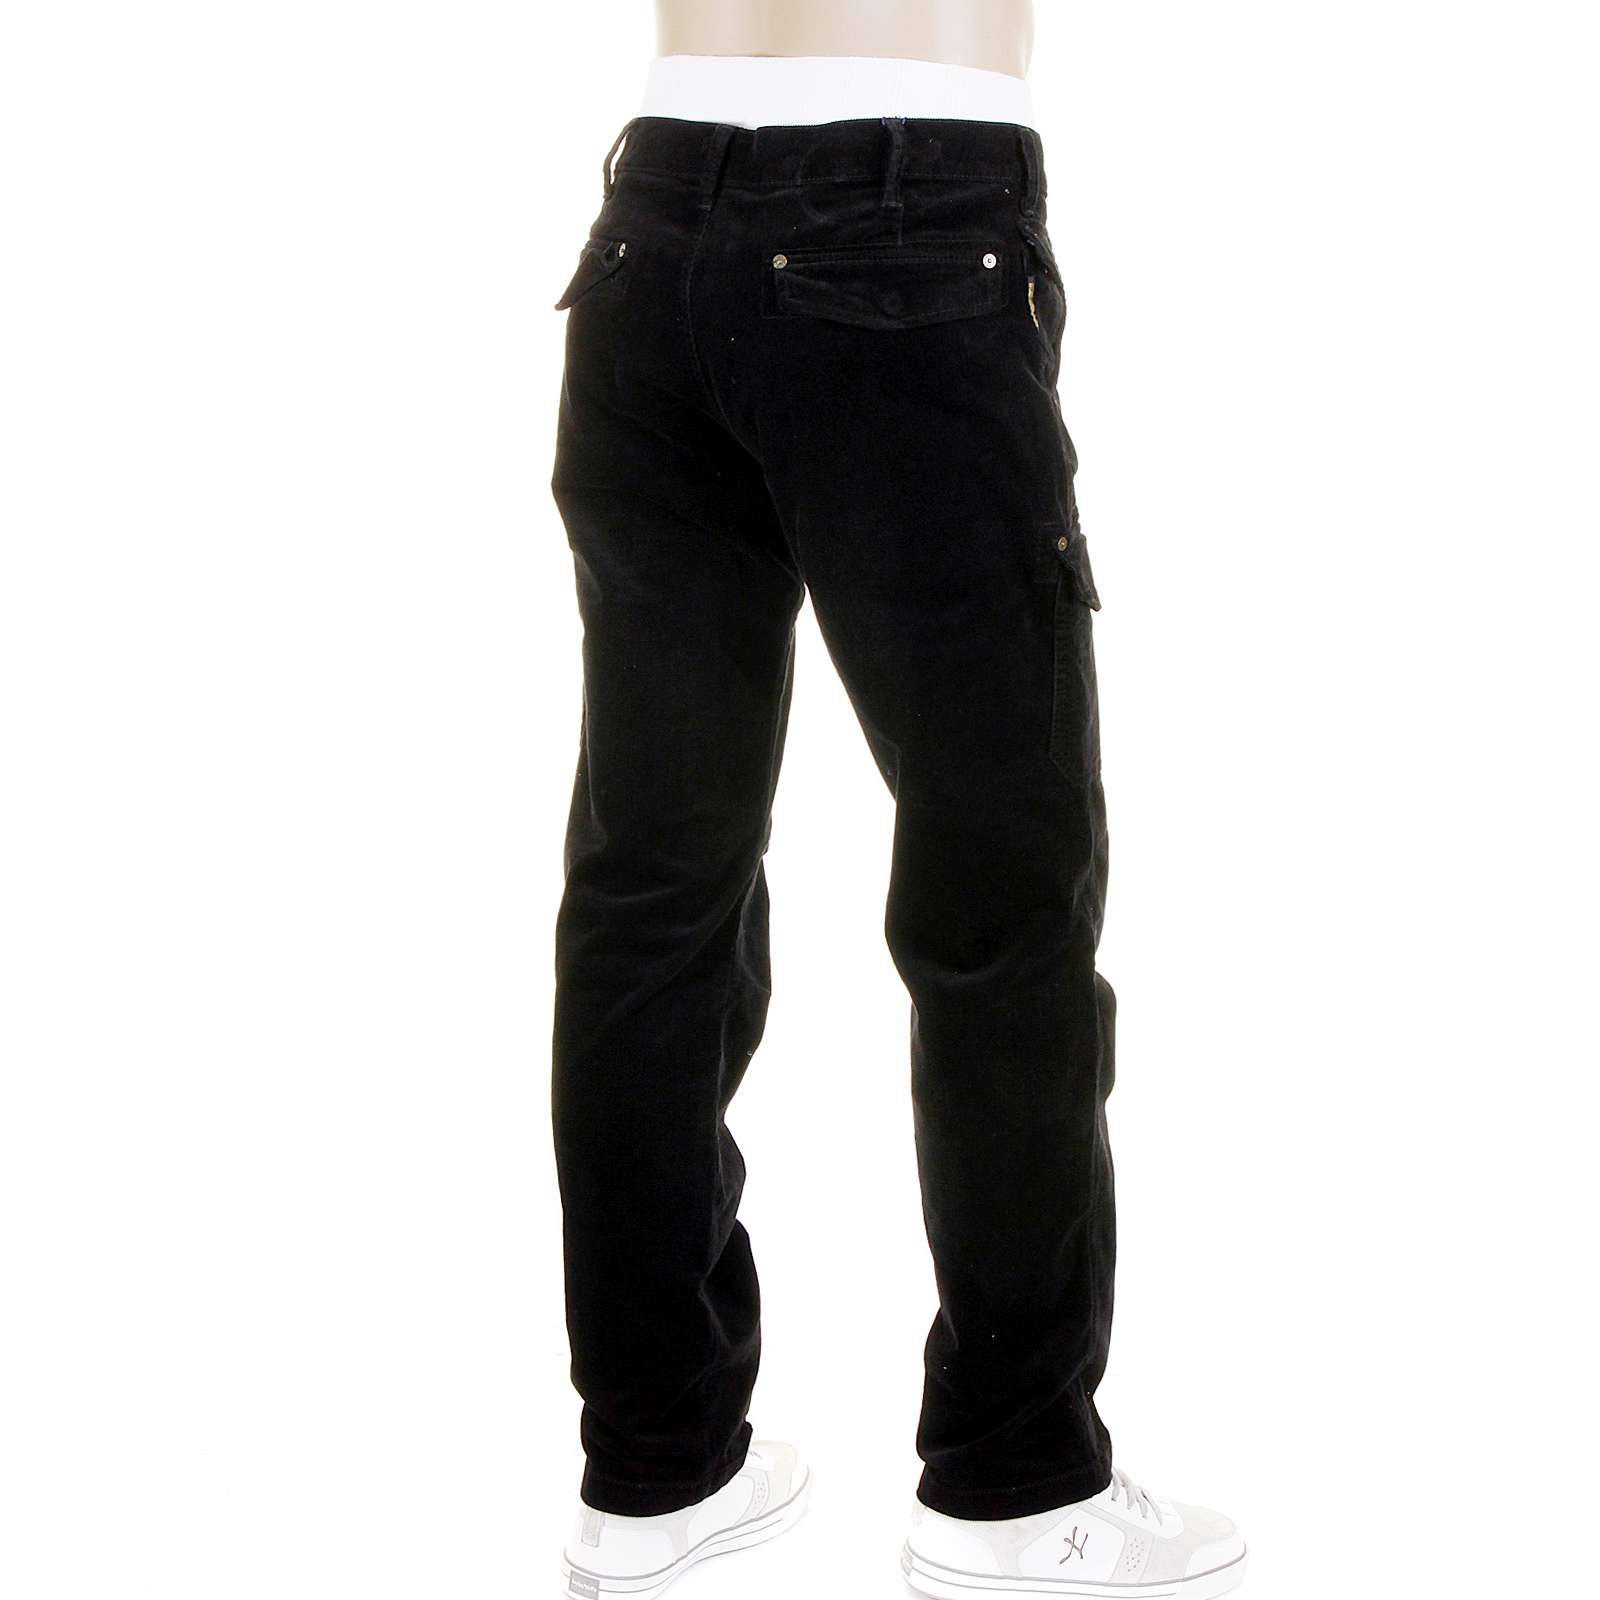 Black Jeans from Armani Jeans